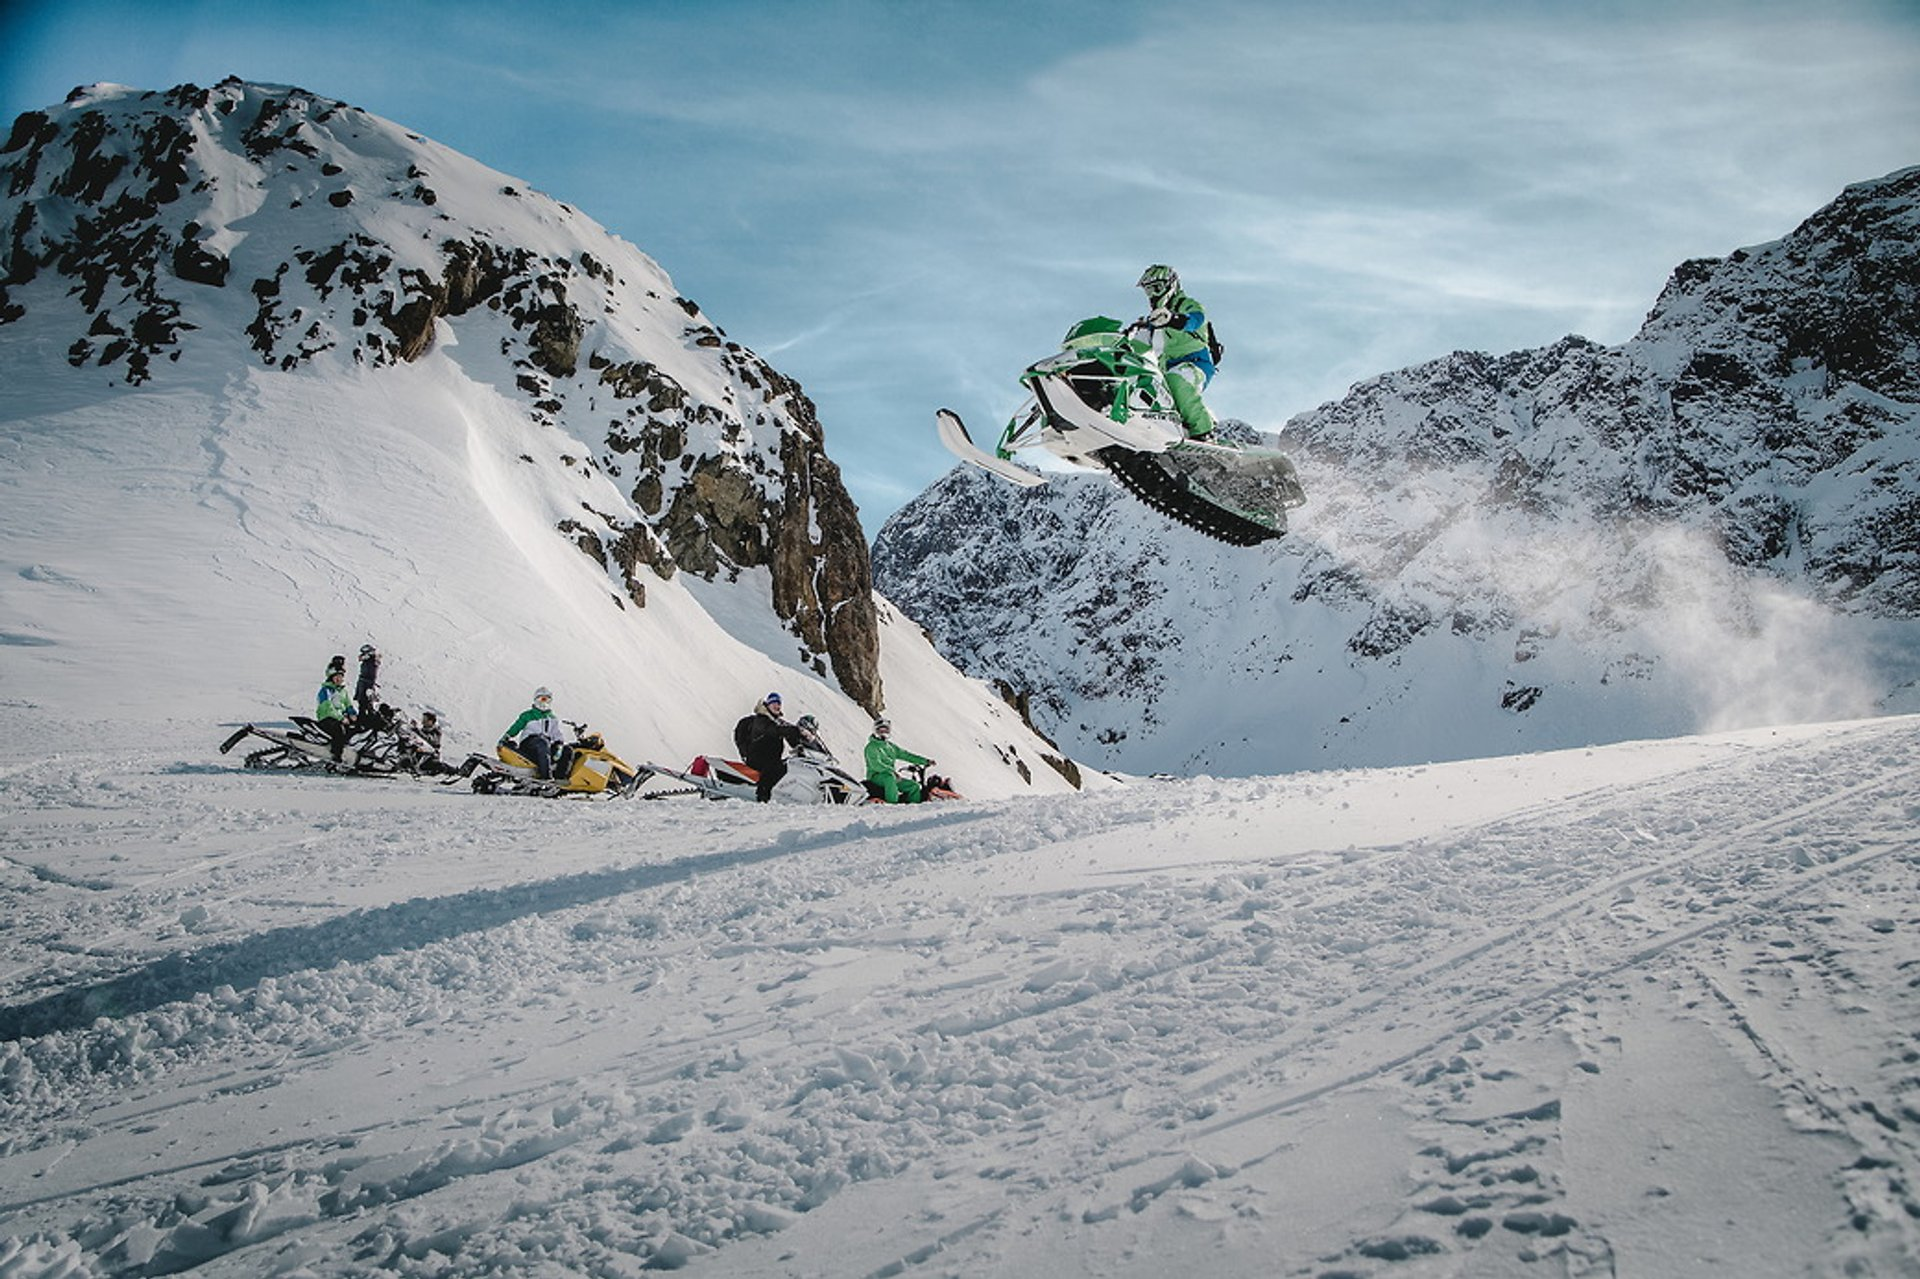 A snowmobiler flying high over a group of friends in the Sisimiut backckountry in Greenland 2019